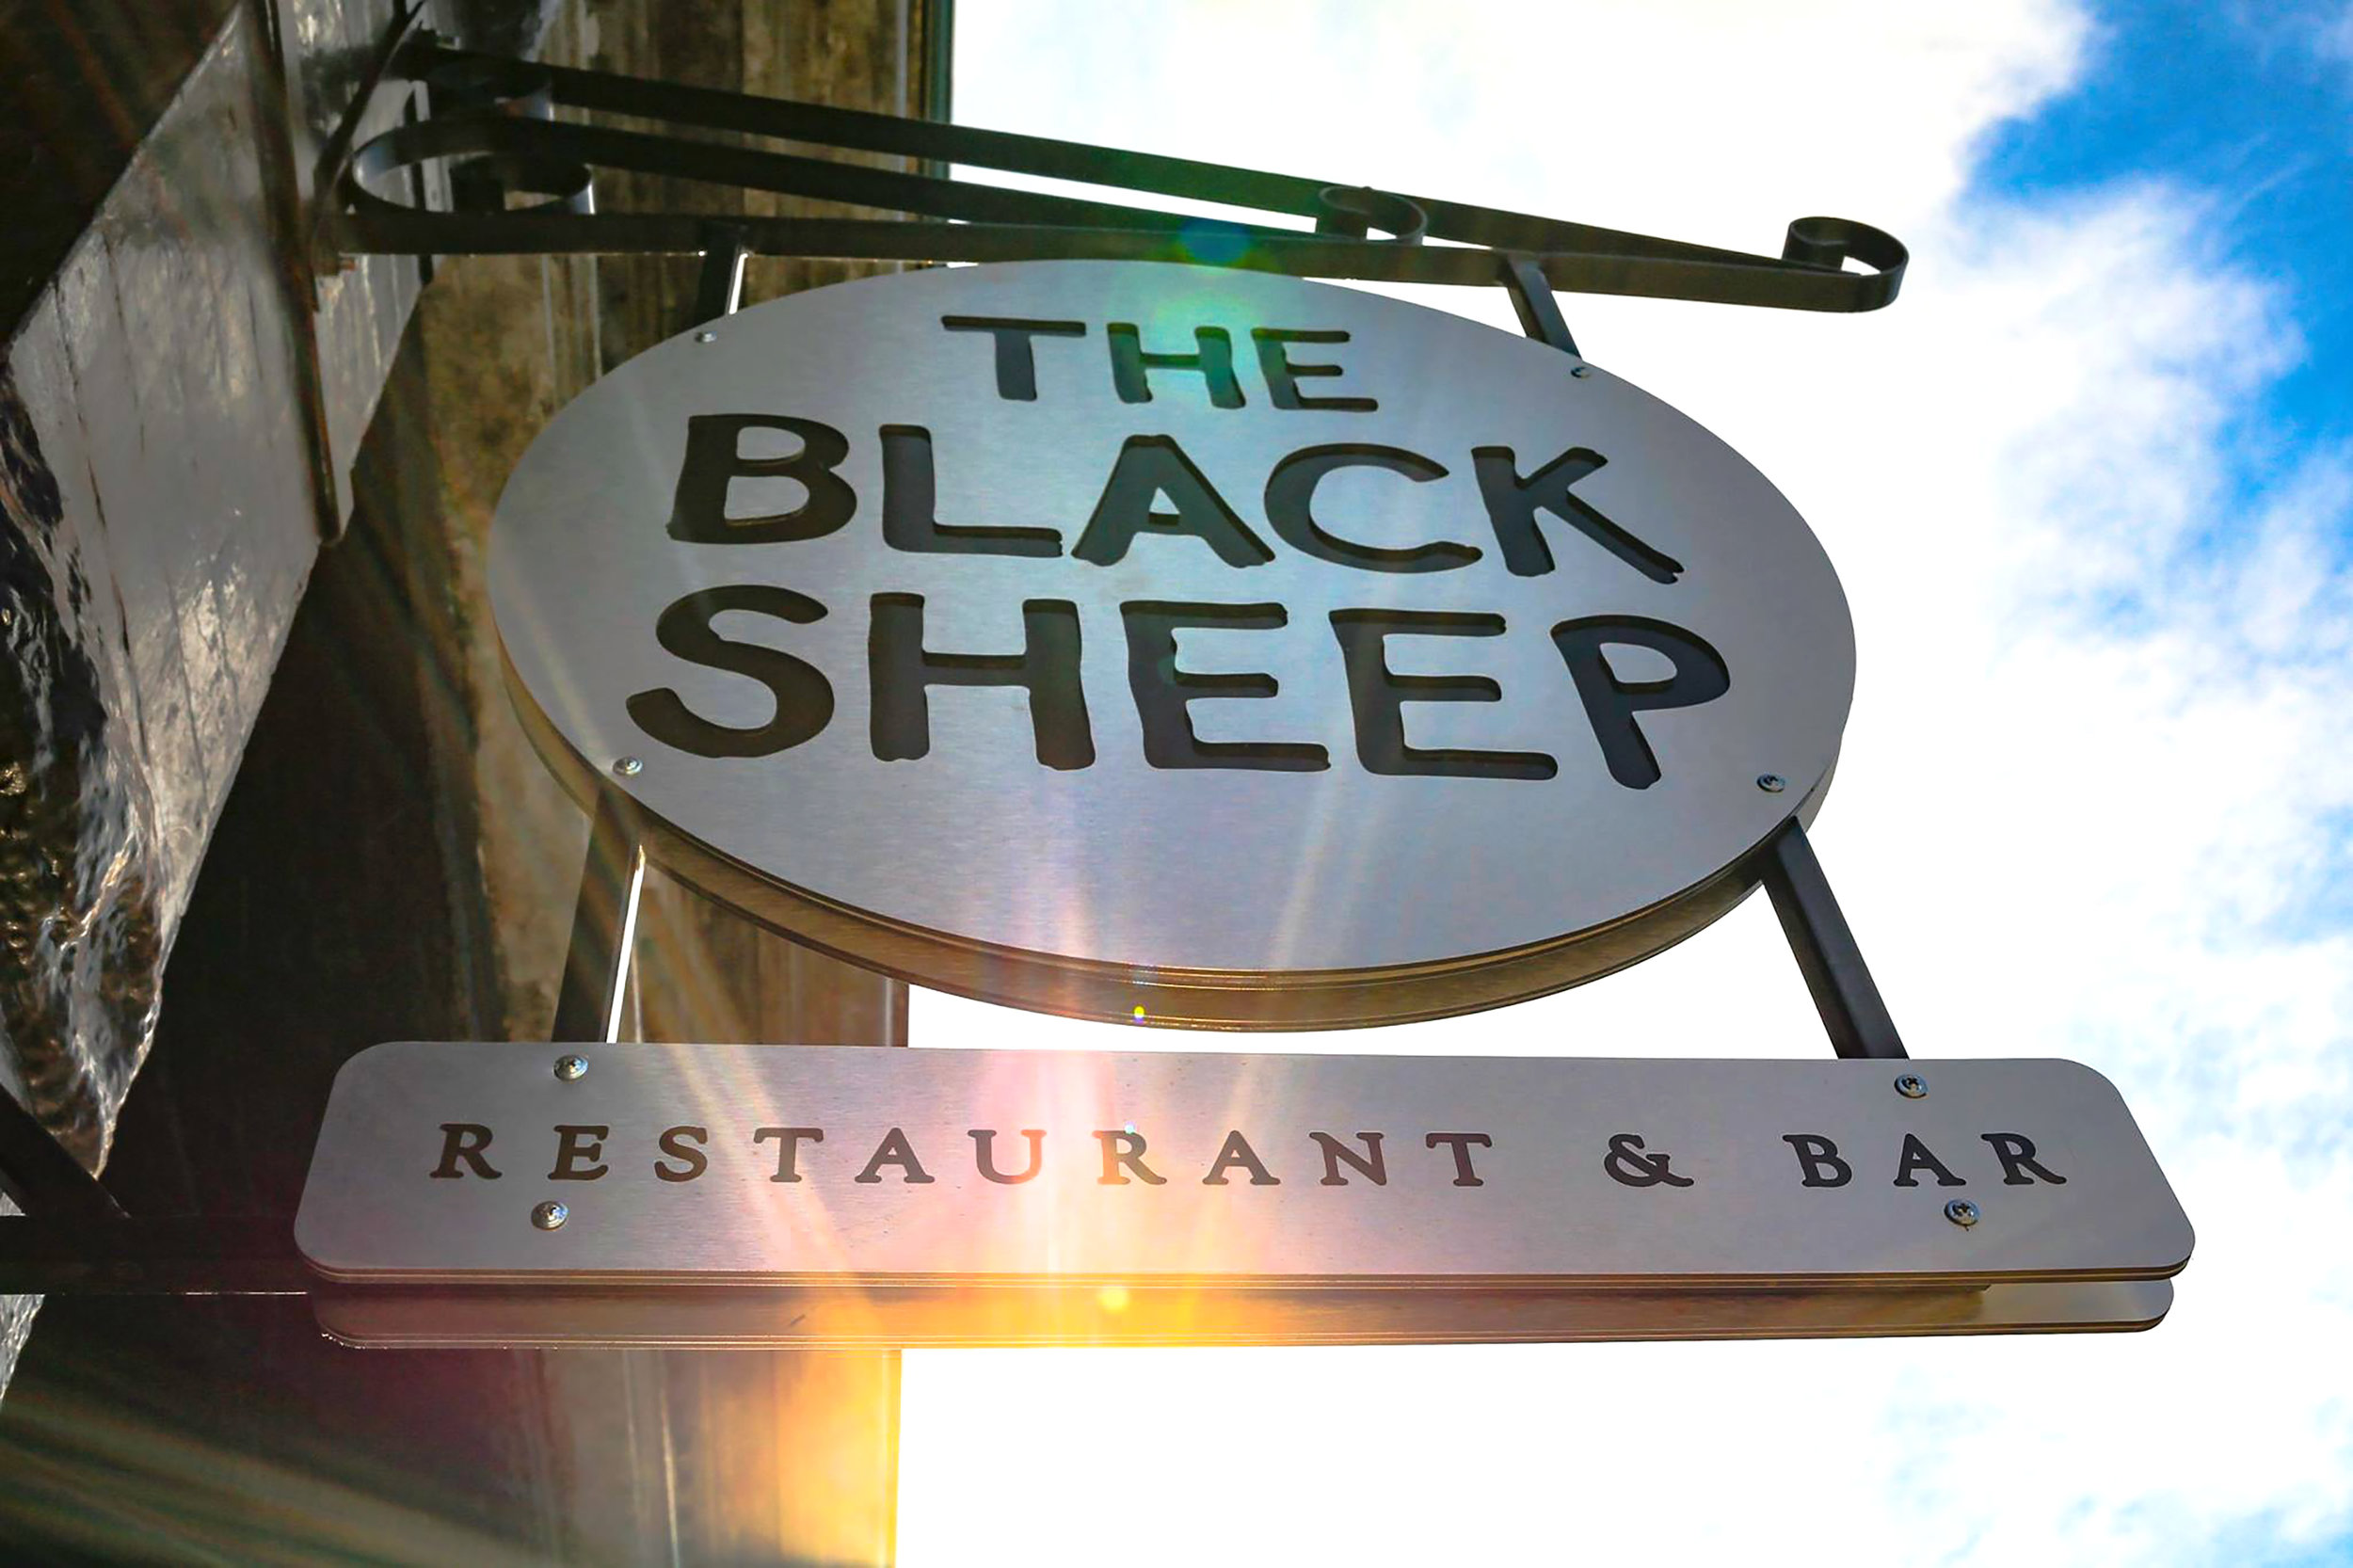 The Black Sheep - Decorative Scroll Bracket Sign with Reflective Graphics and Routed Brushed Aluminum Sign Faces